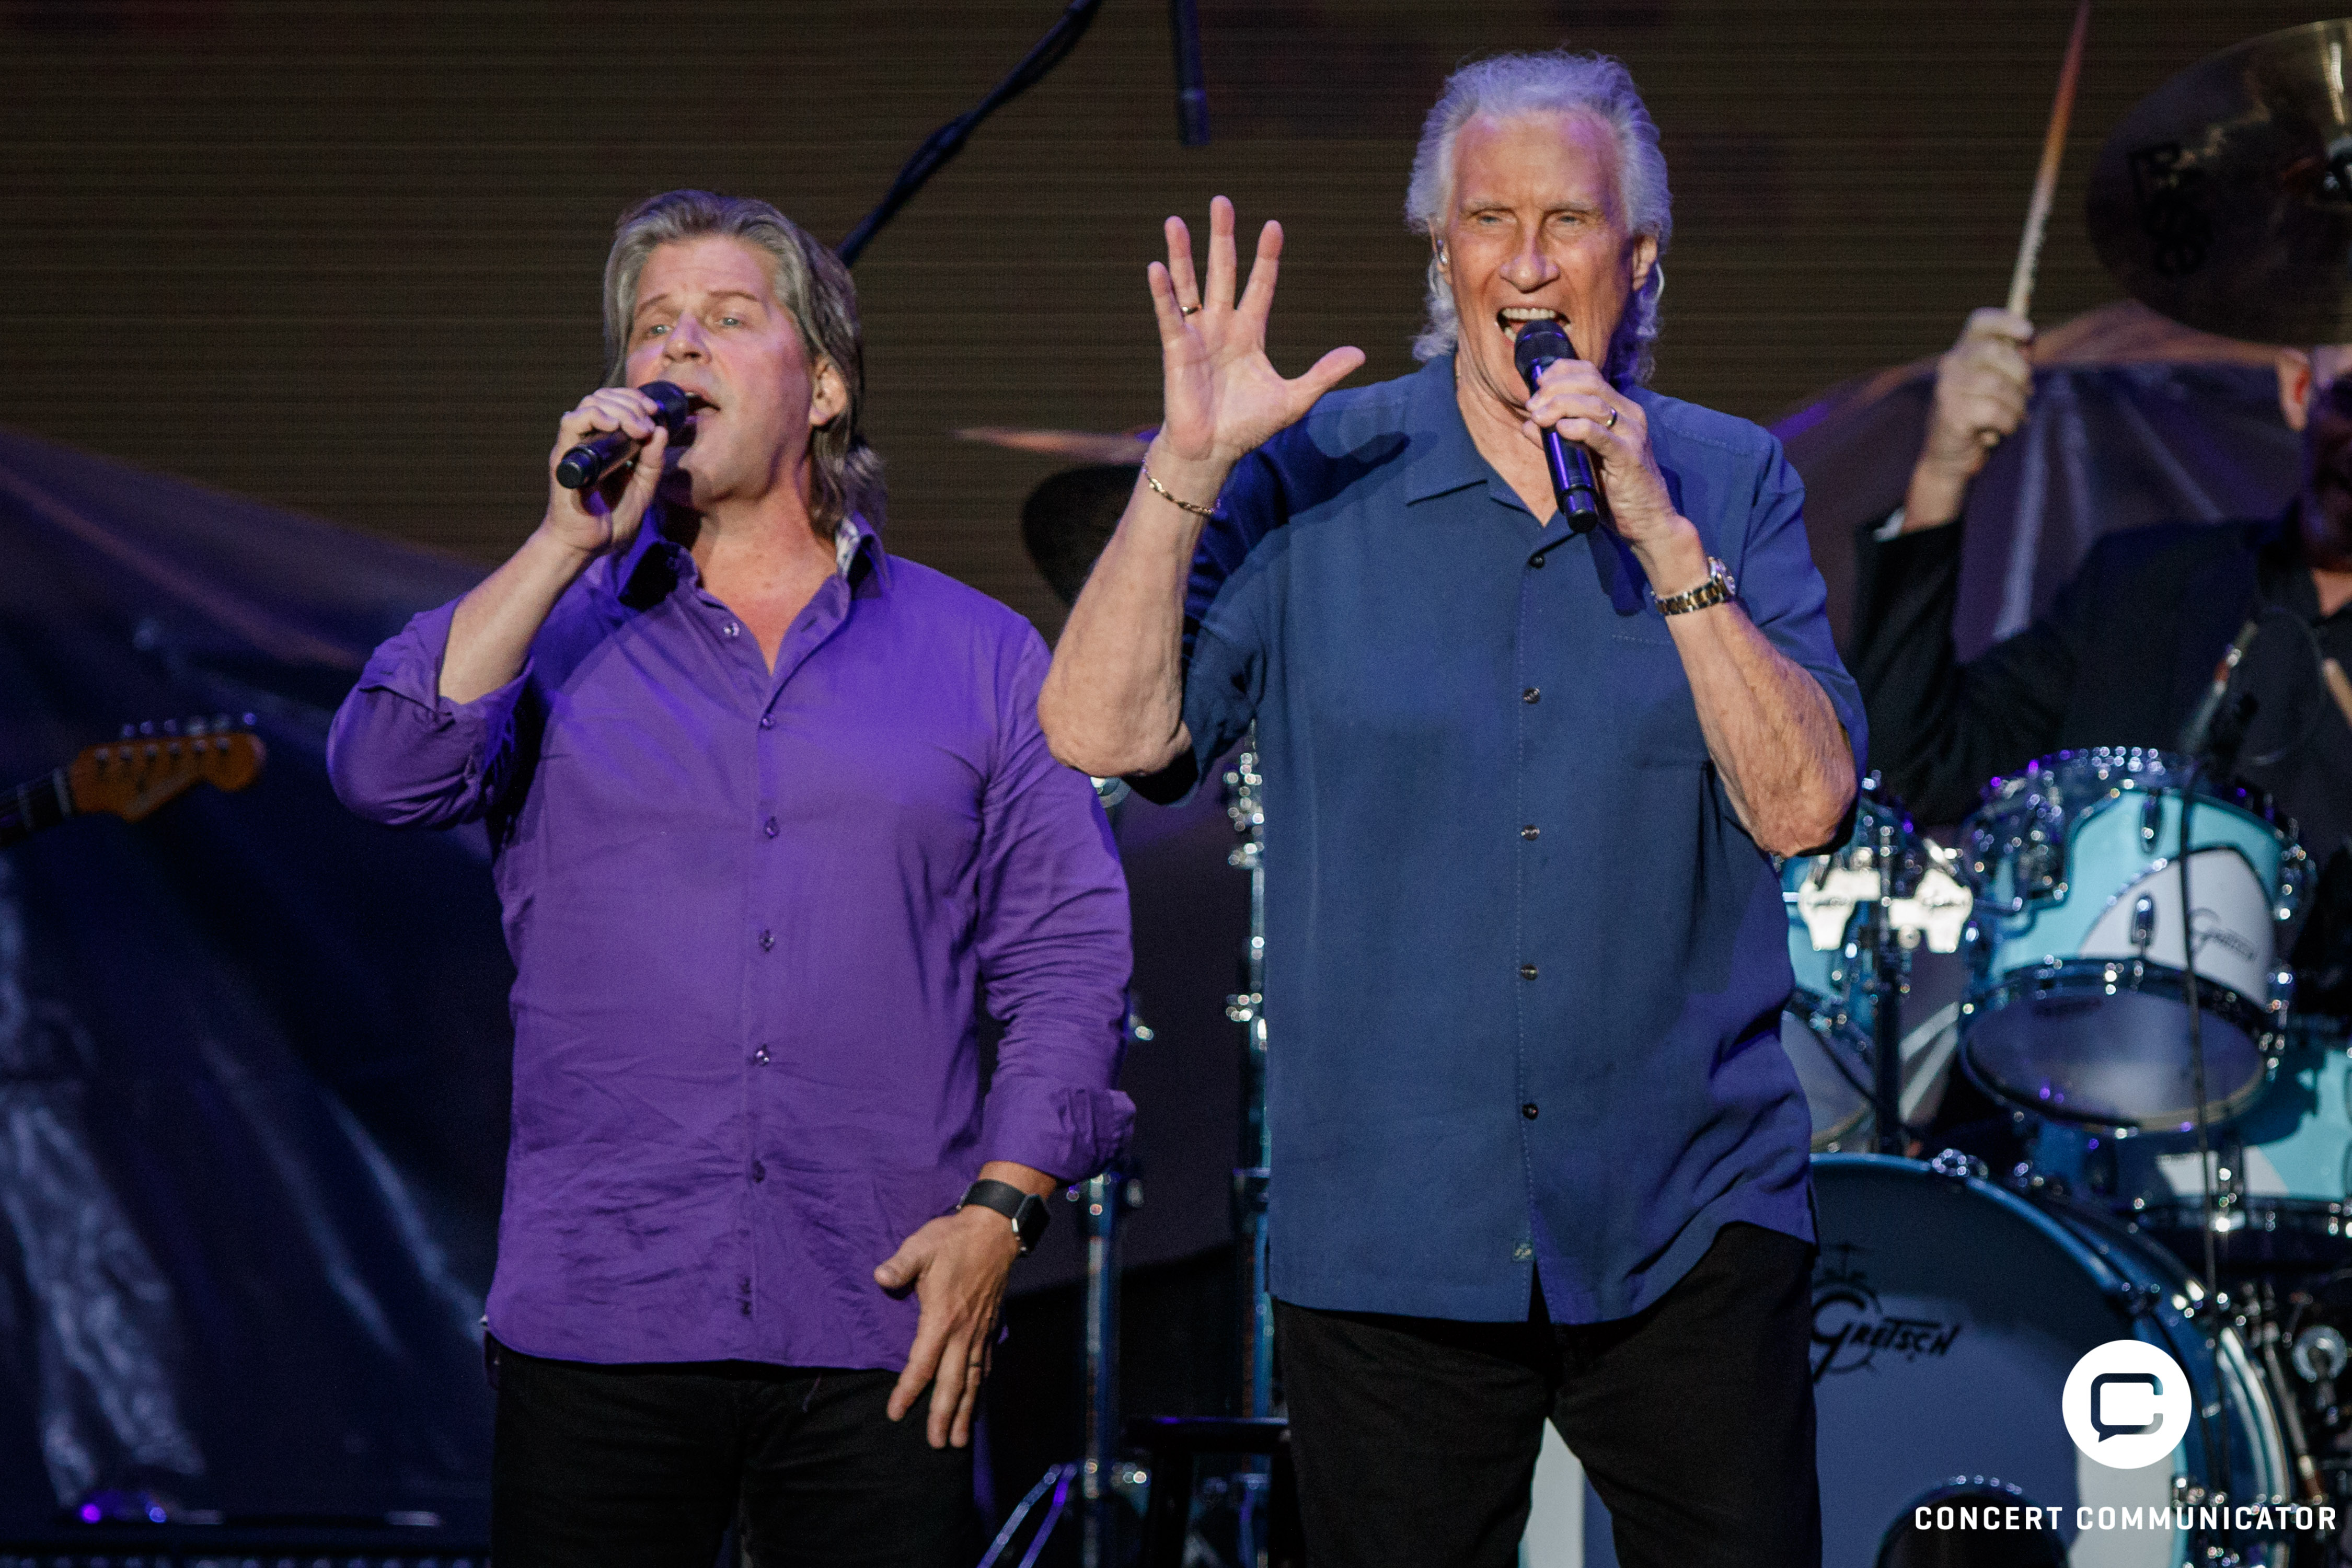 The Righteous Bros @ MN State Fair